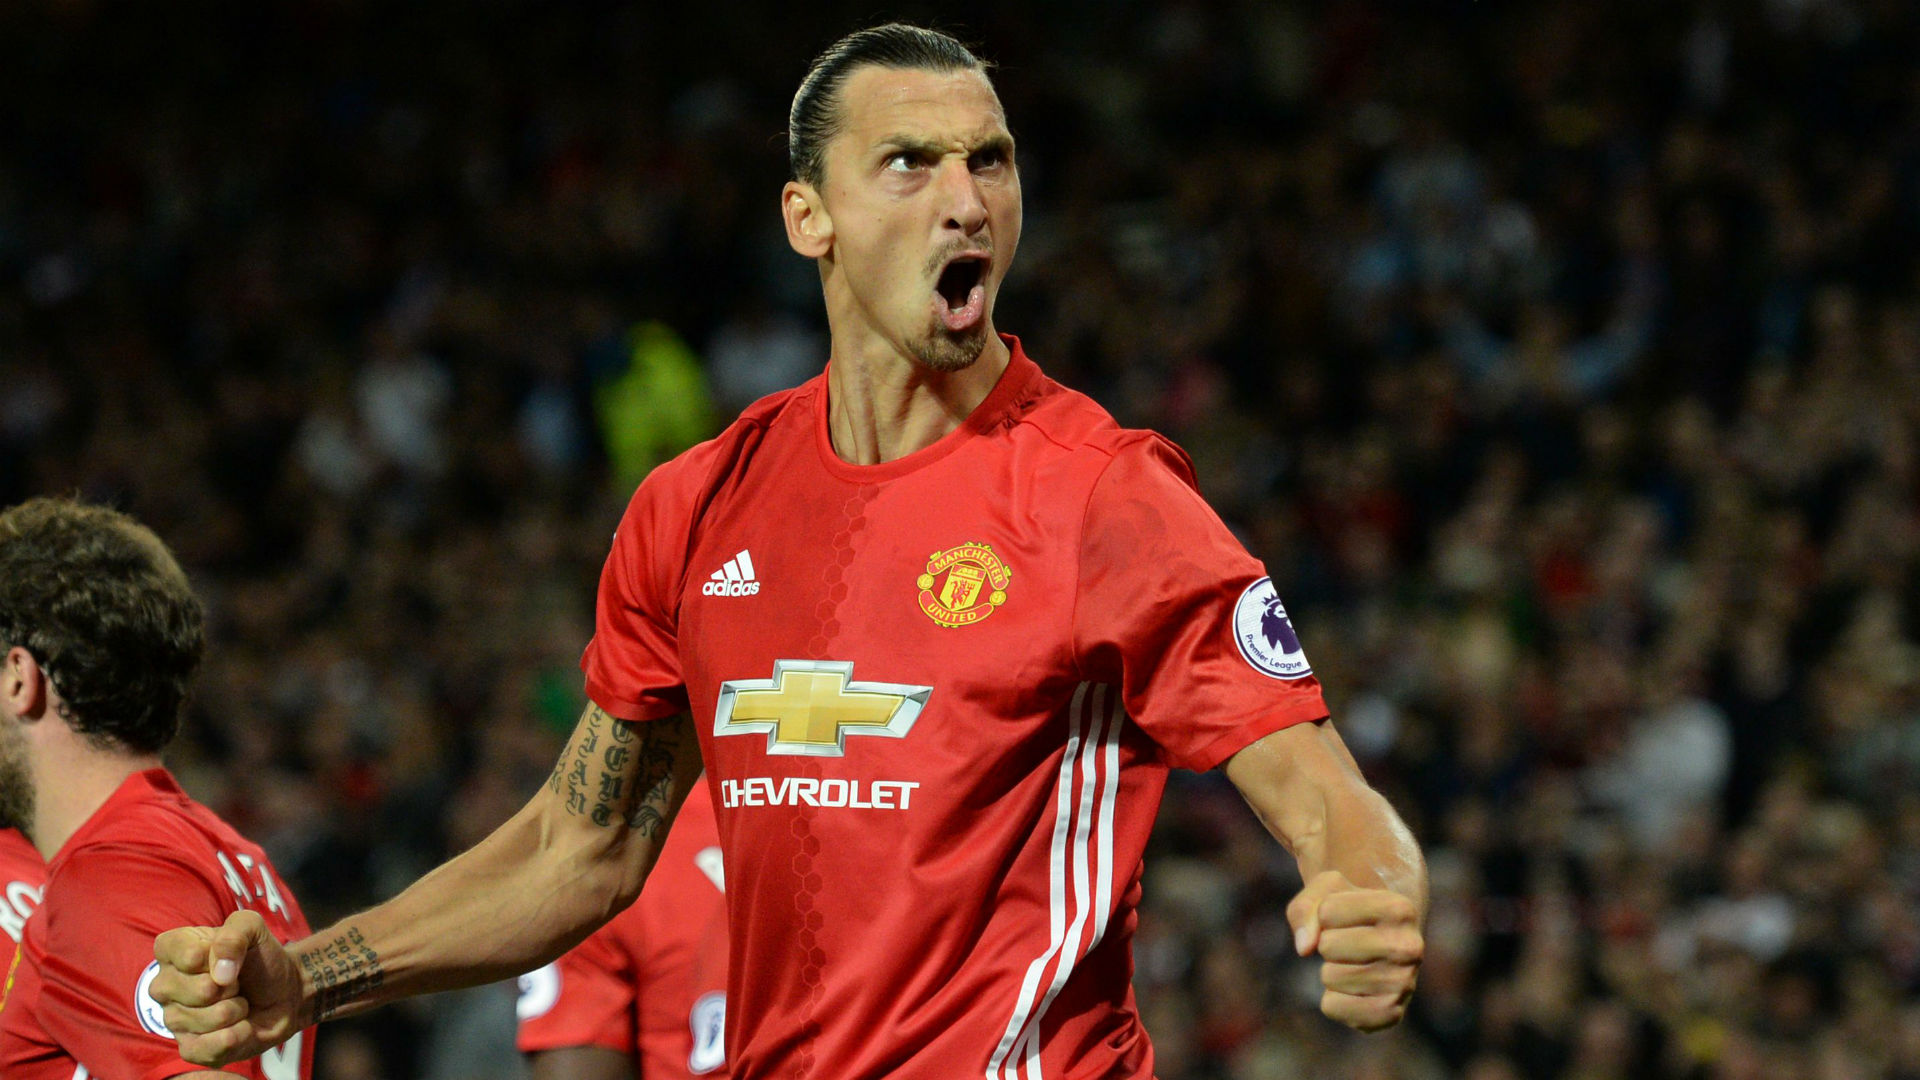 Zlatan Ibrahimovic set to return to full training by end of October